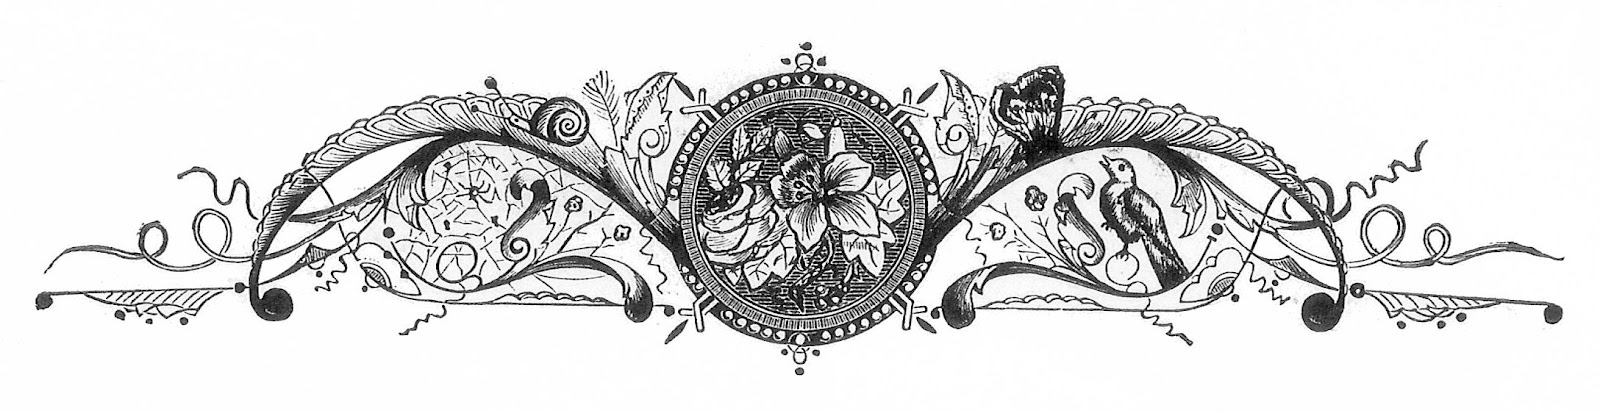 Victorian Design Elements antique images: black and white illustration: vintage graphic